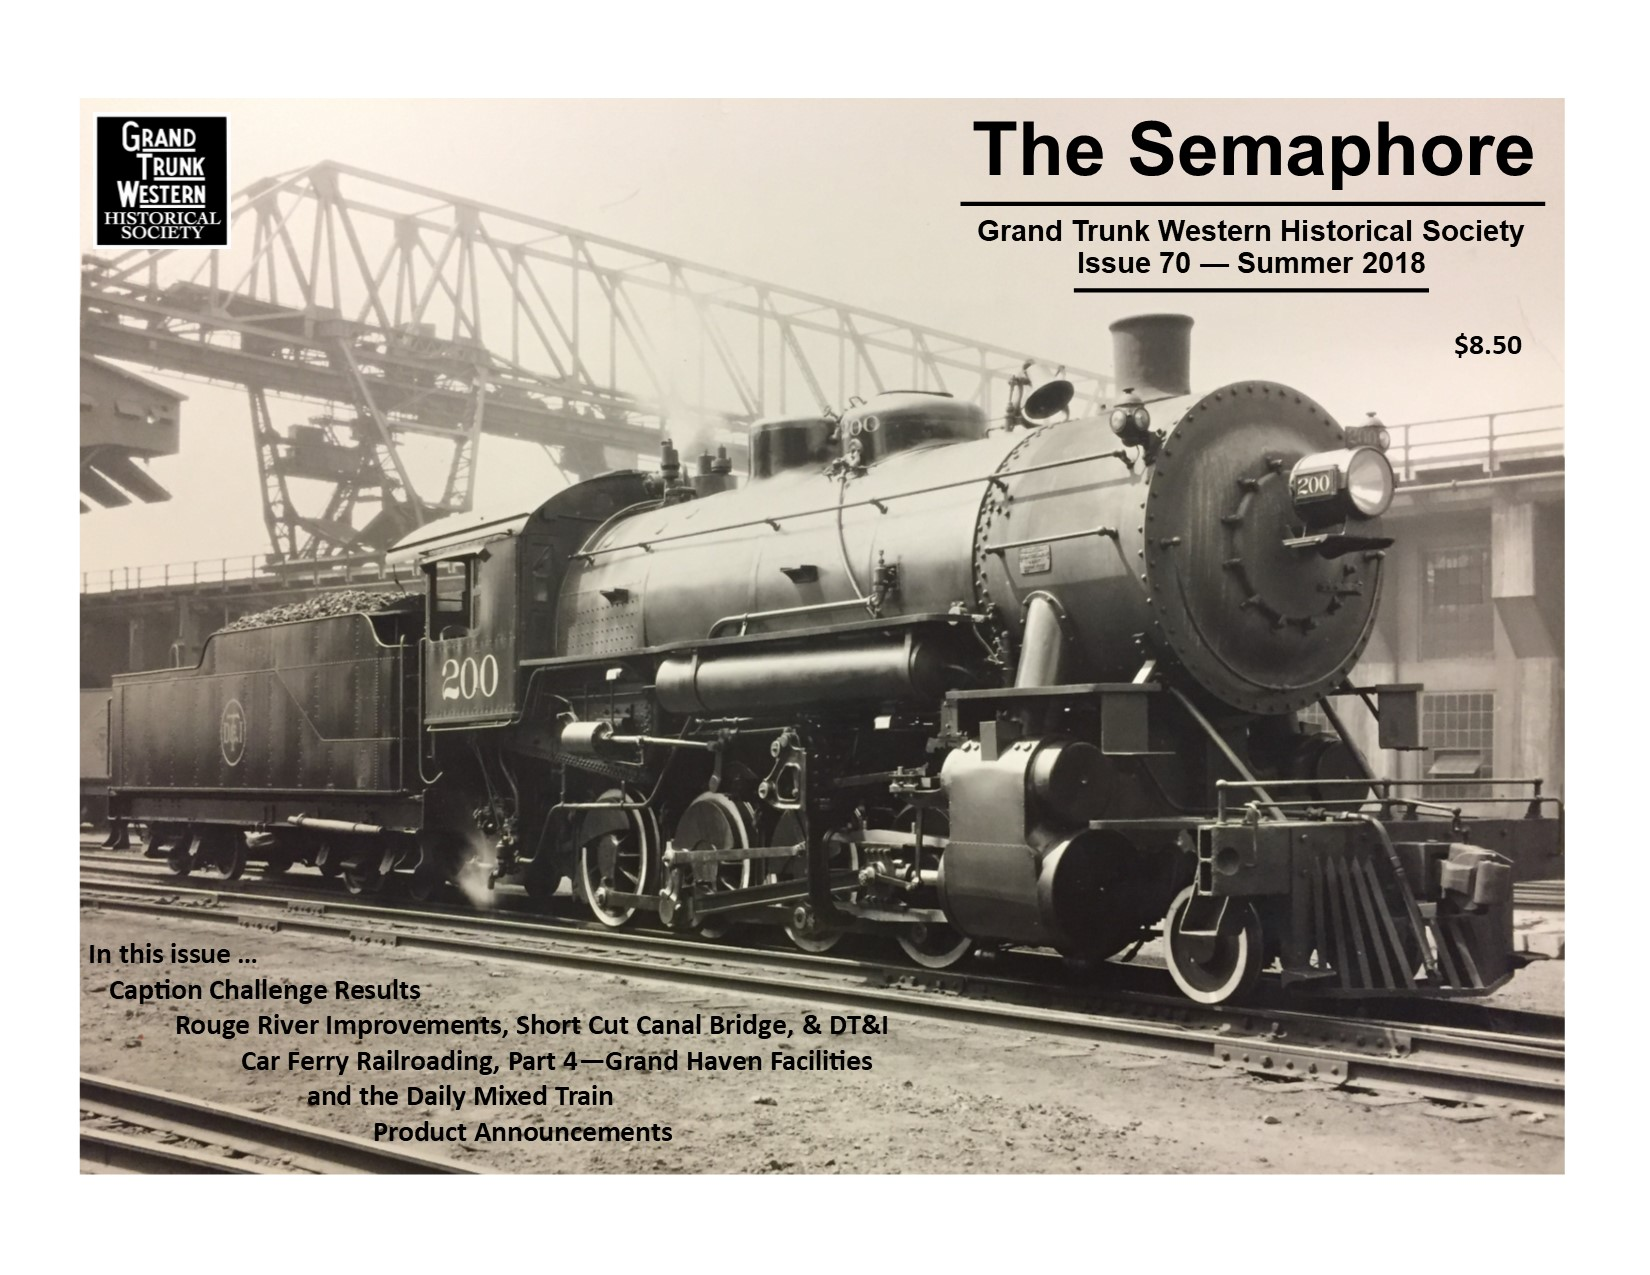 Semaphore Issue 70